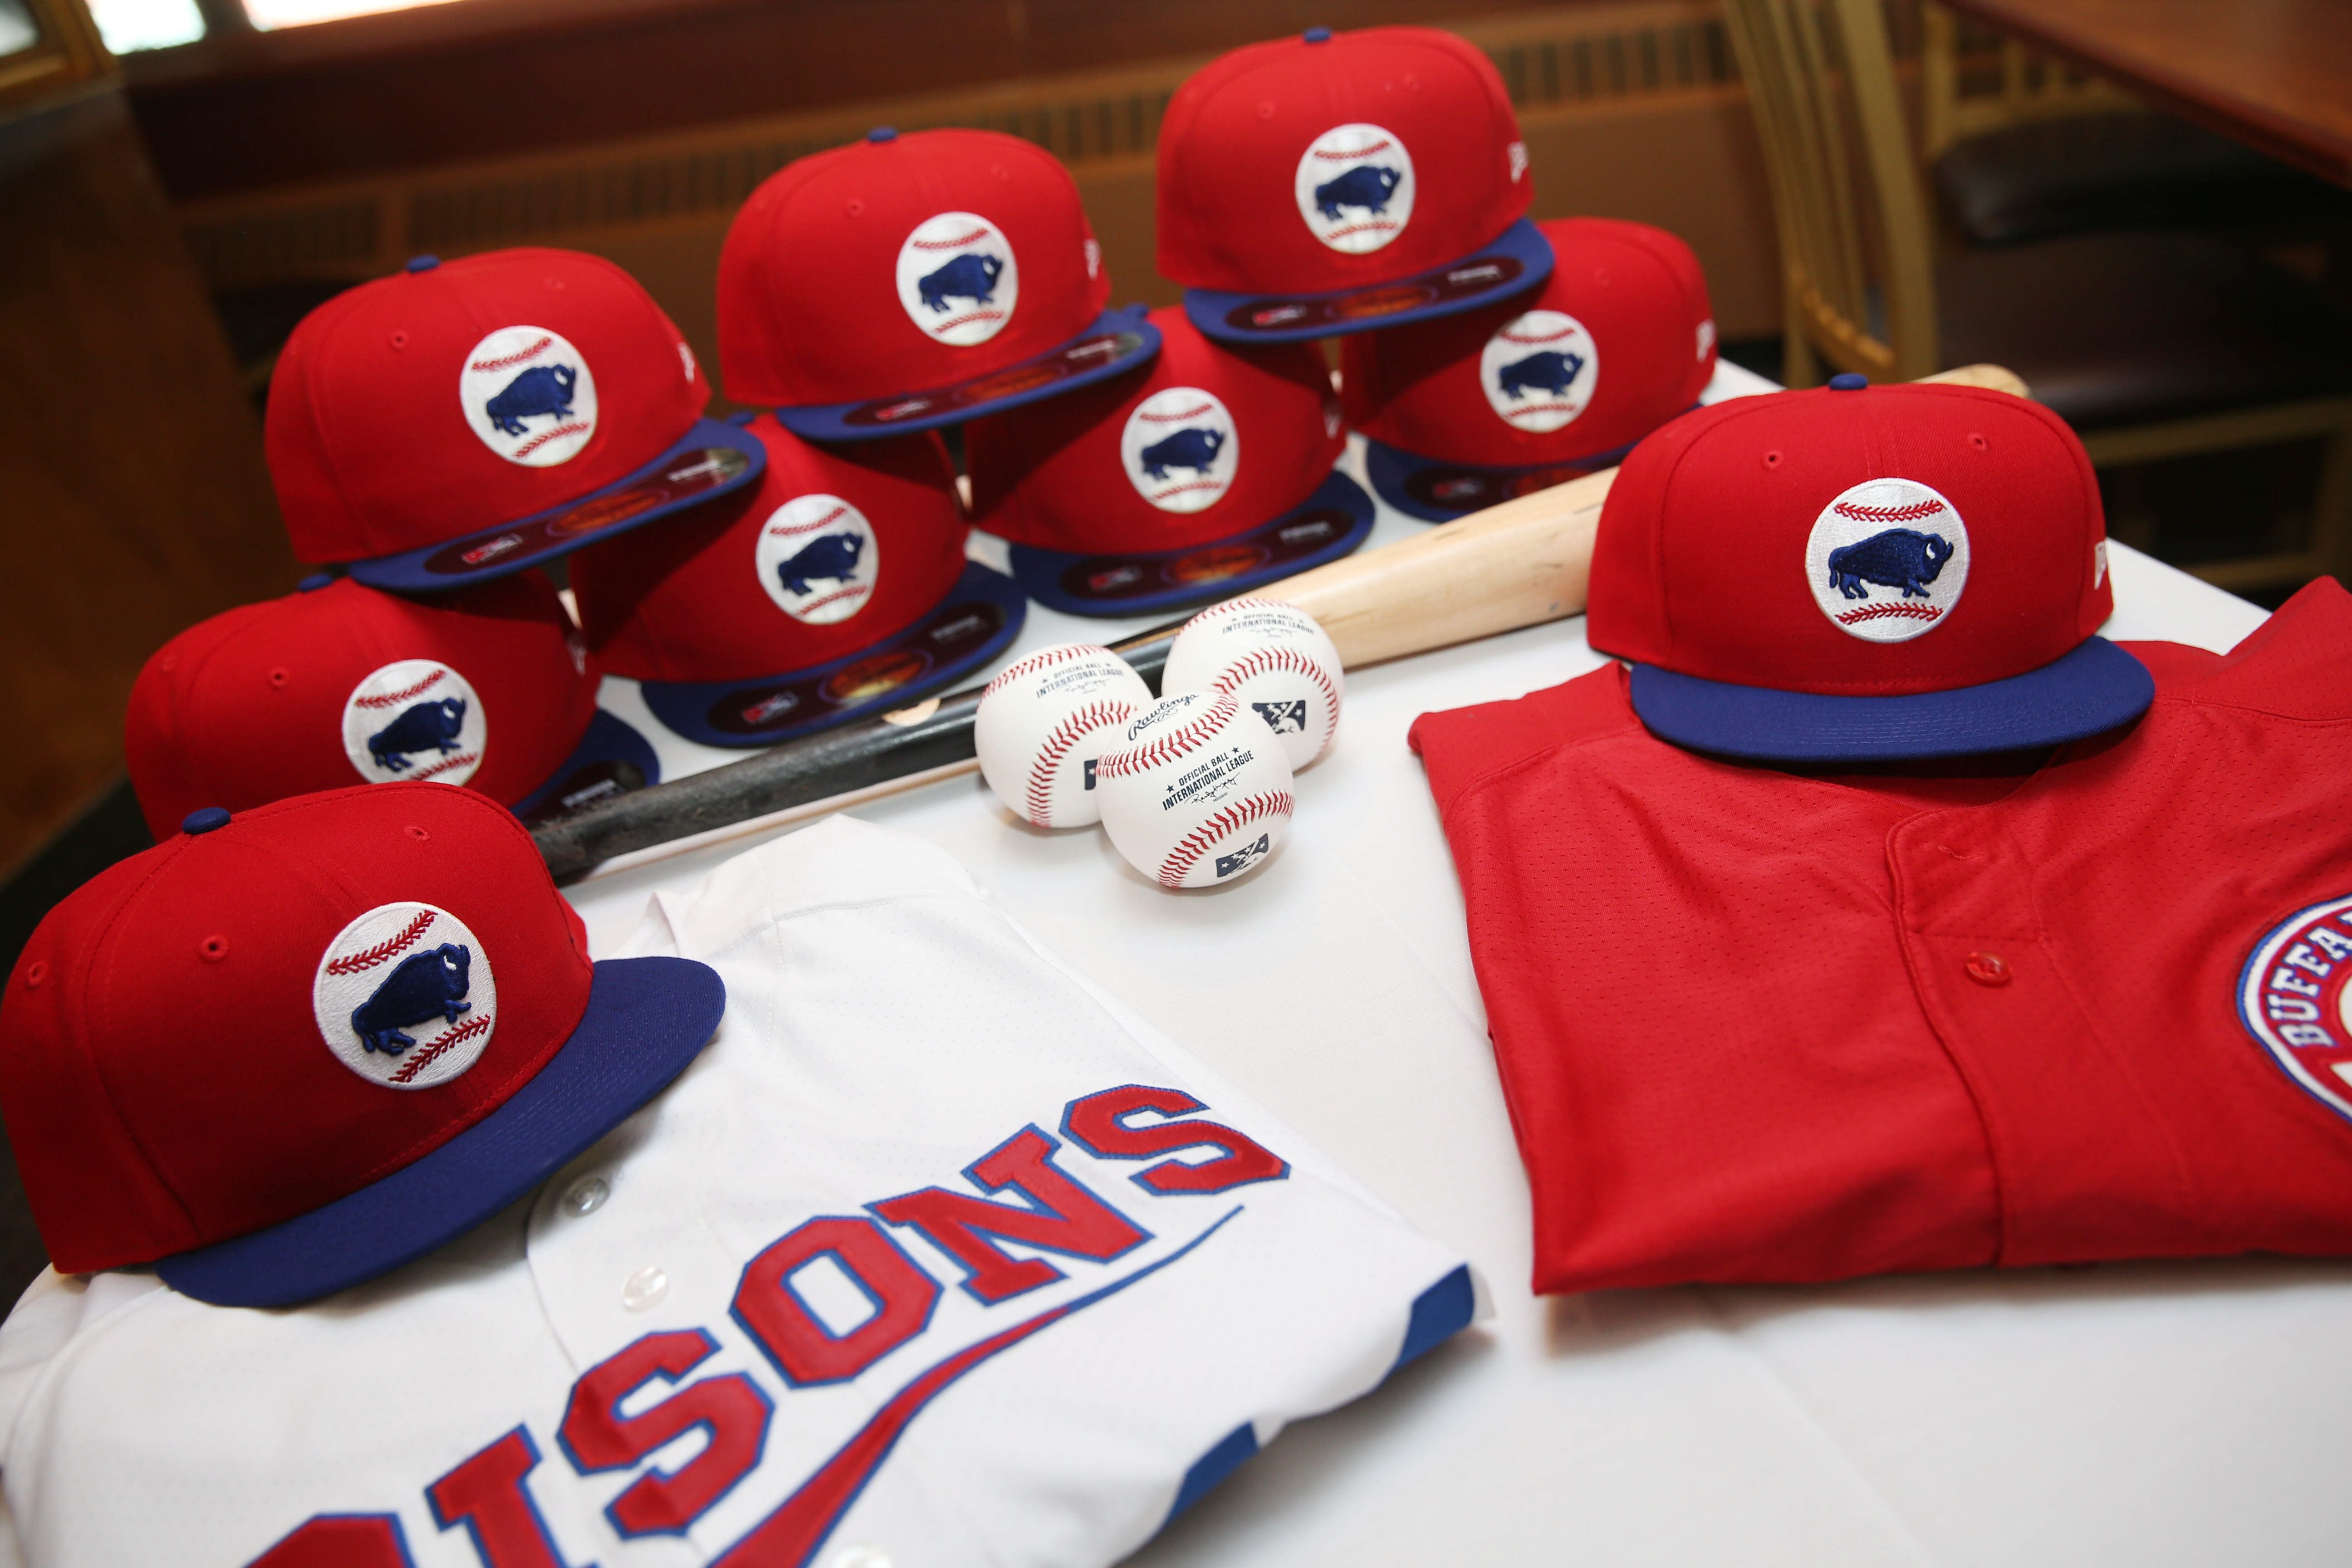 """Bisons fans will notice a new team alternate cap, unveiled at Wednesday's """"What's New"""" event, to be worn by players at various times this season. To see more of what's new, view a photo gallery at BuffaloNews.com."""